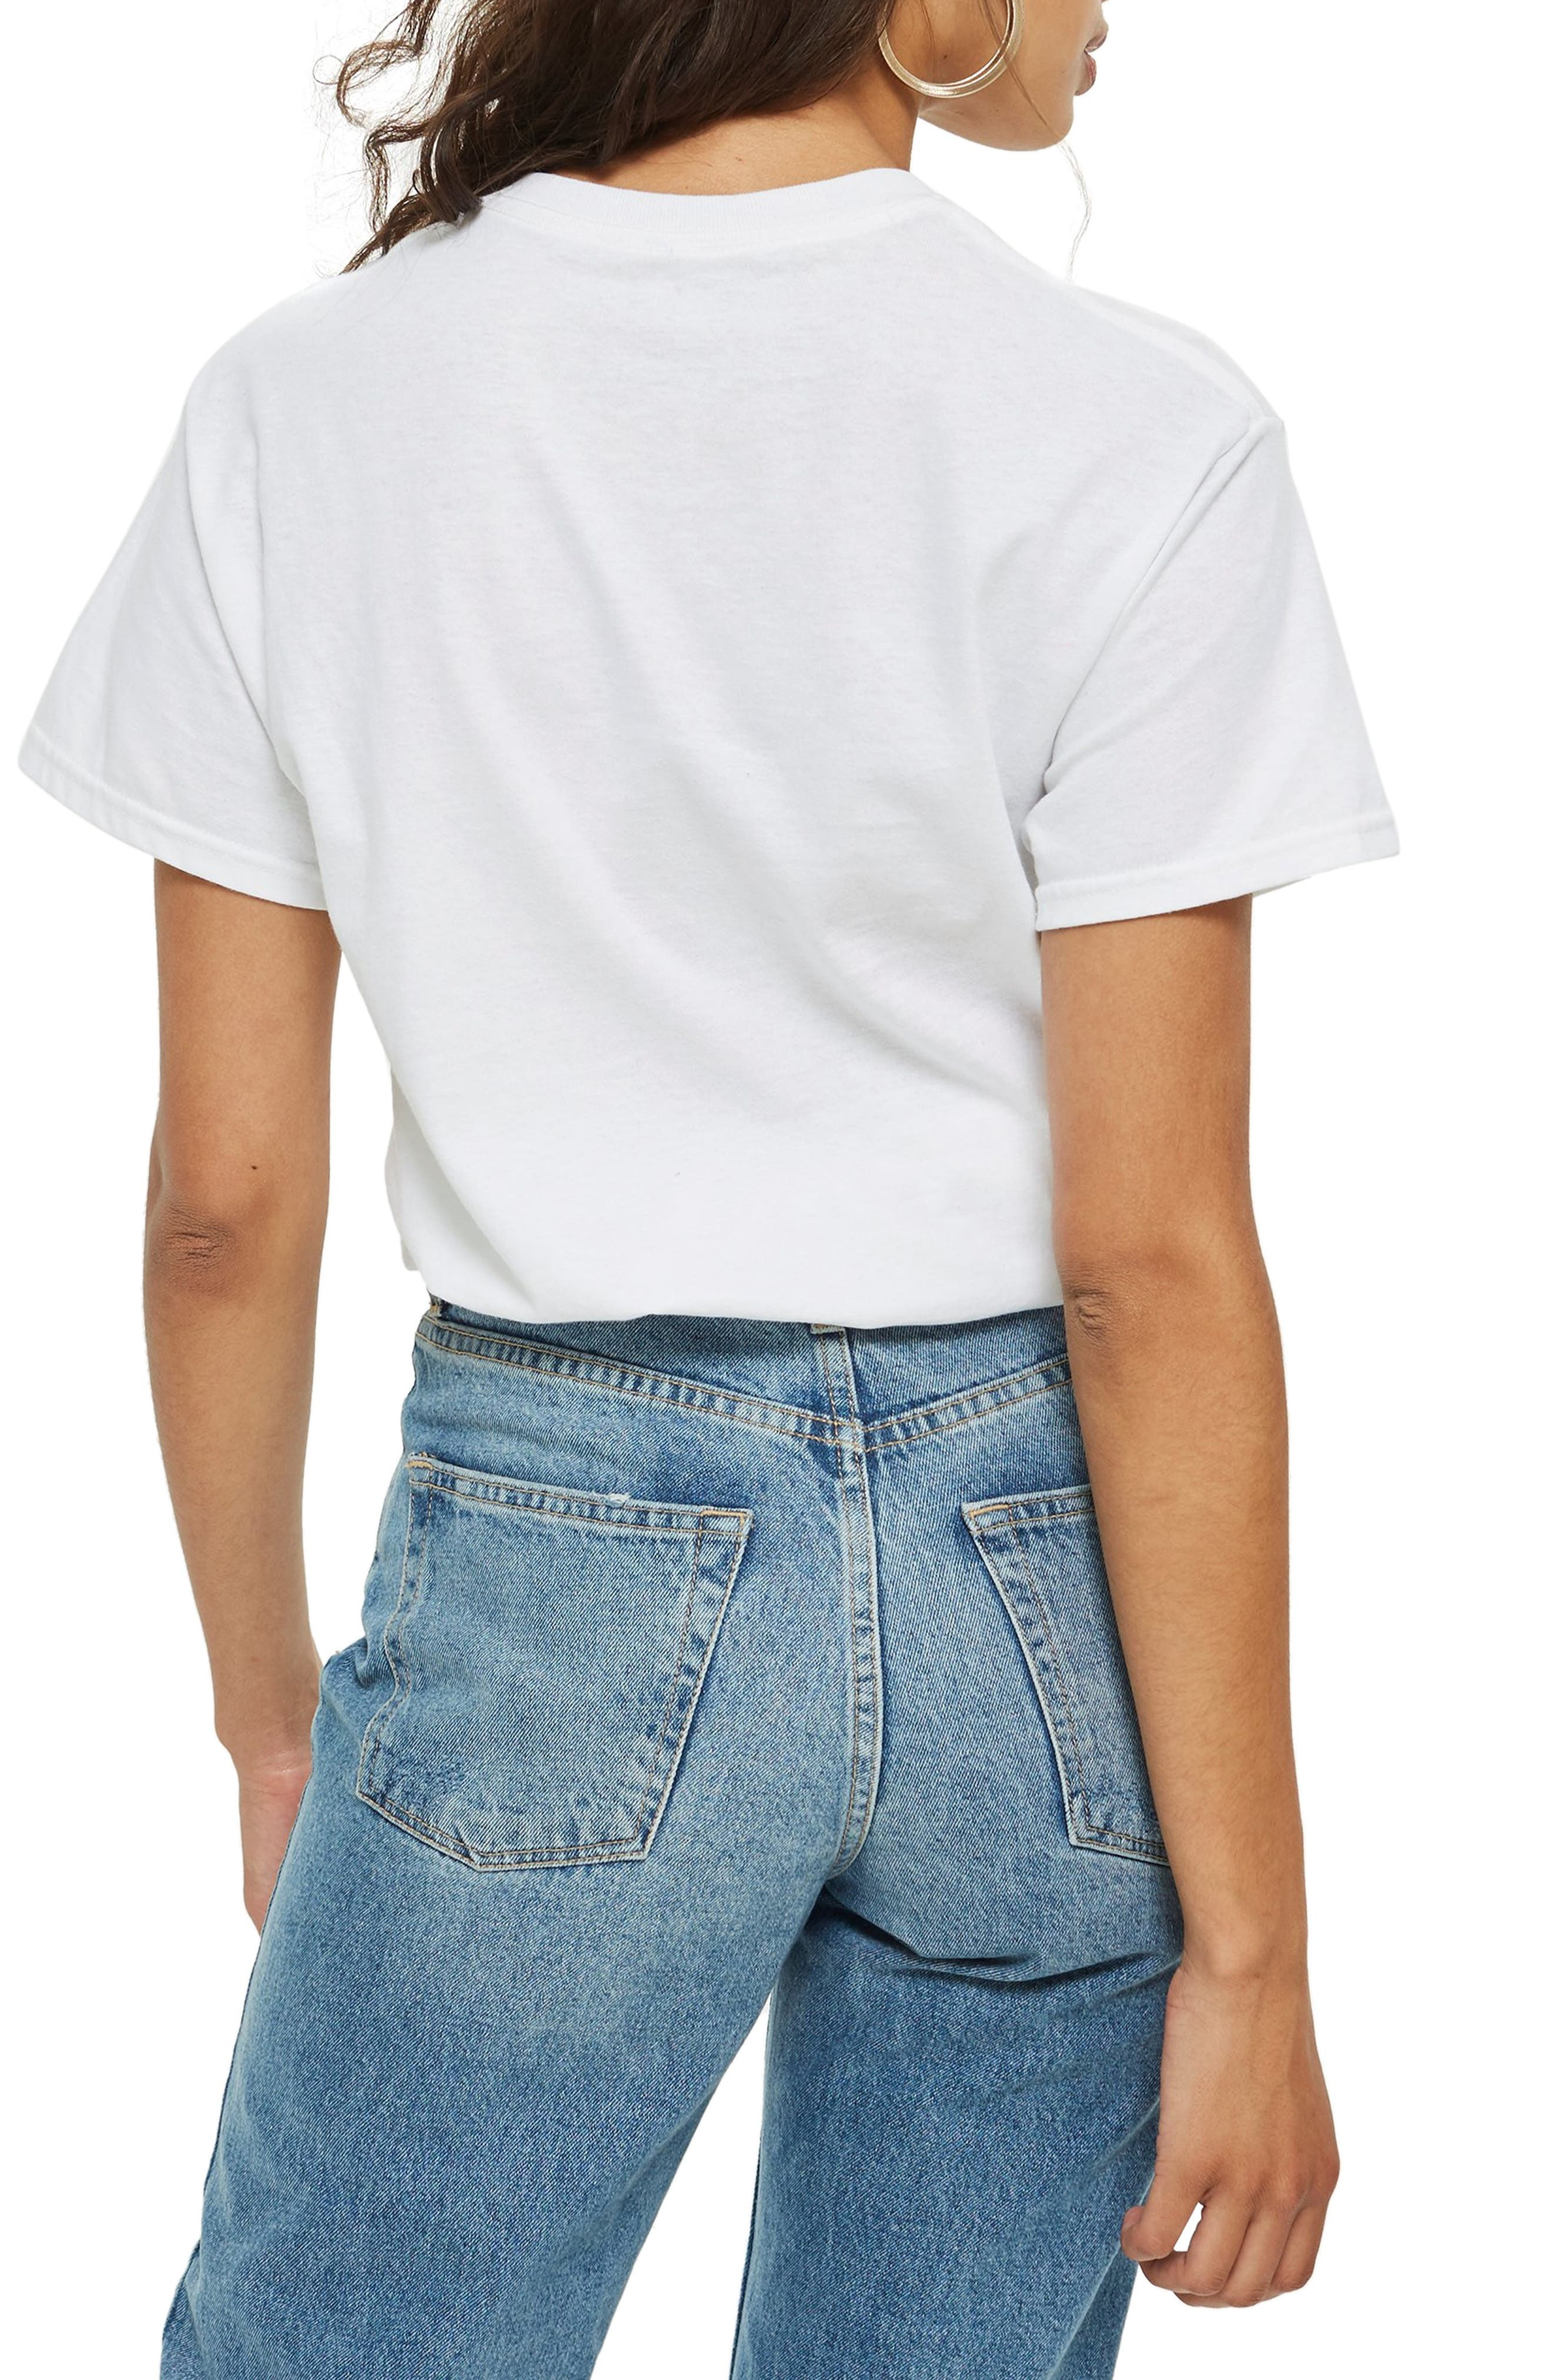 TOPSHOP,                             Britney Spears Graphic Tee,                             Alternate thumbnail 2, color,                             100